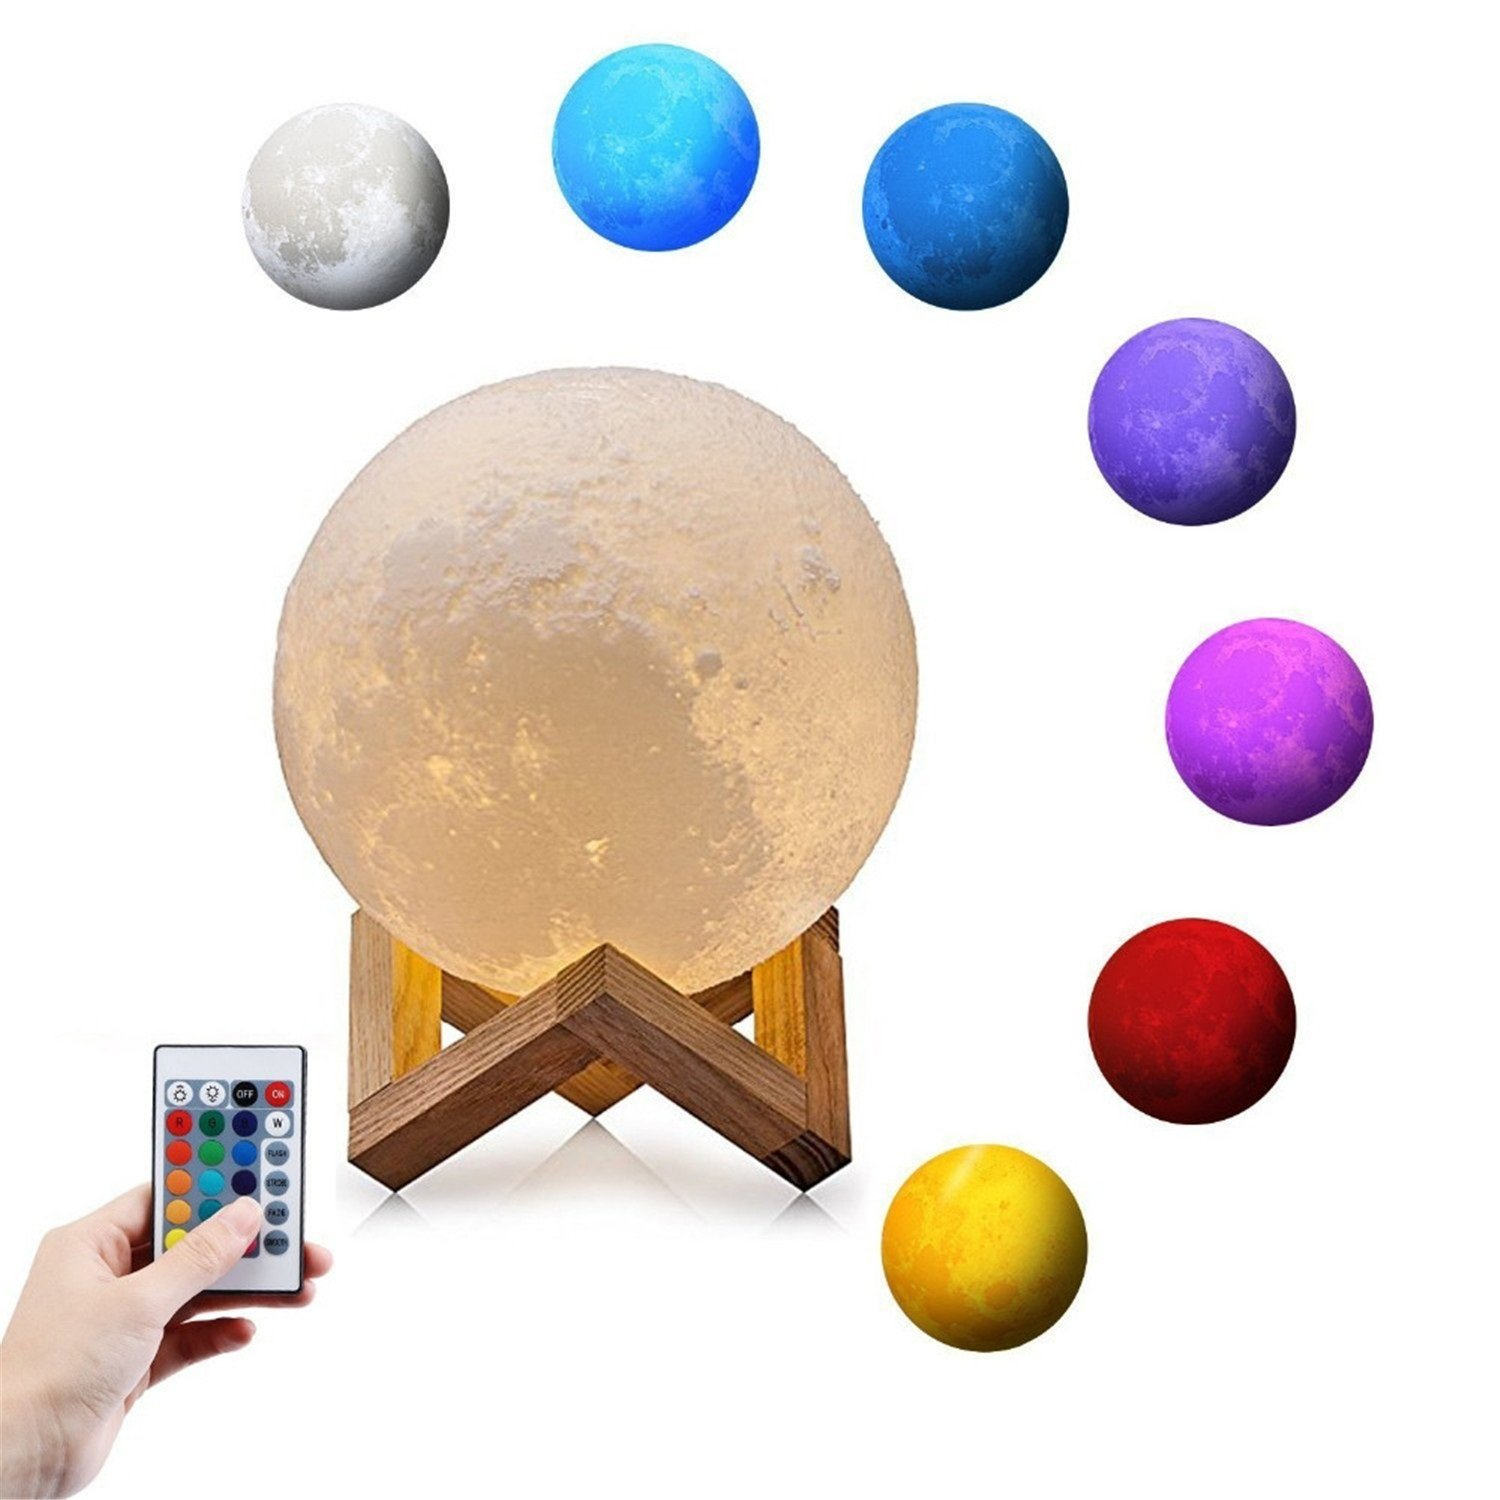 Yaojiaju 15cm 3D Print Moon Lamp, Warm and Cool Lighting Rechargeable Home Decorative Night Light with Wood Stand